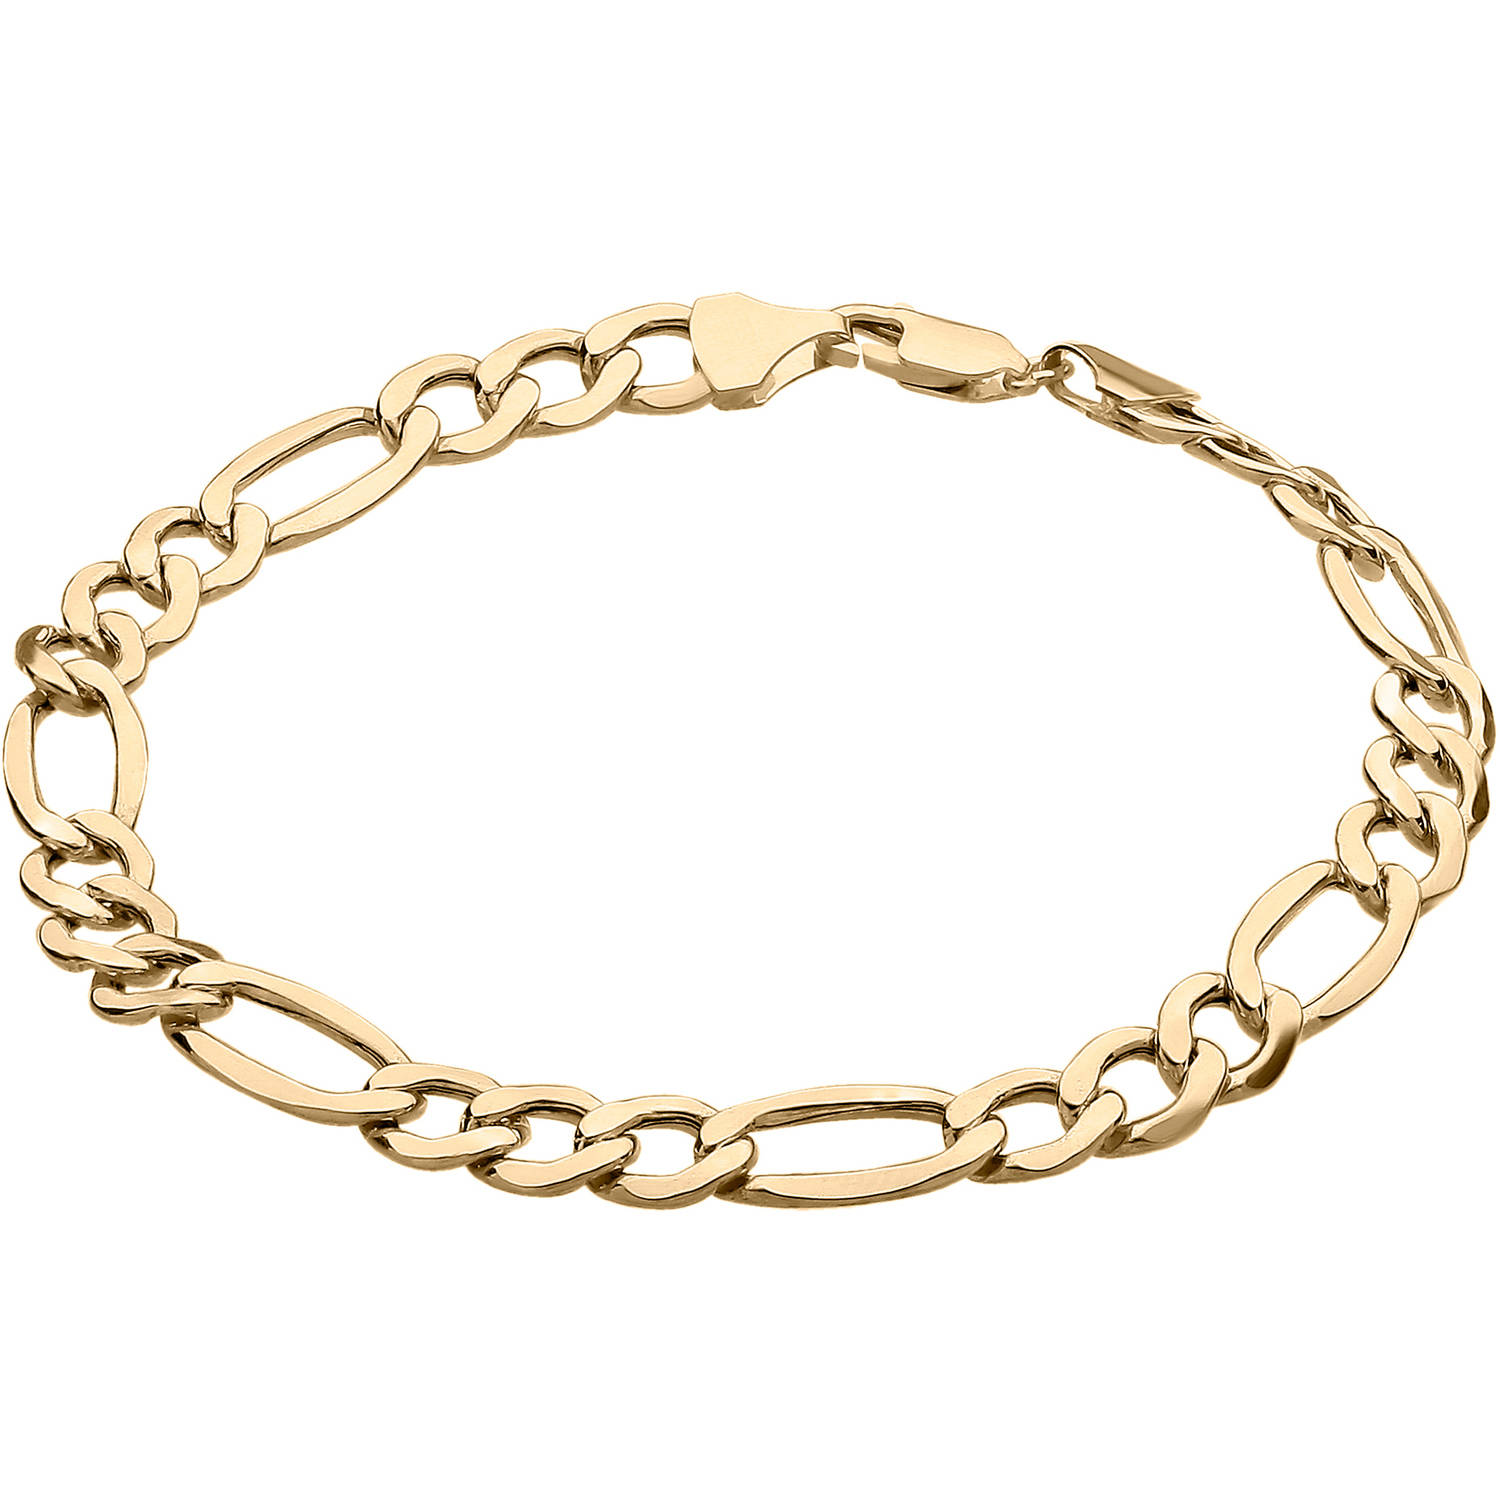 Simply Gold Men's 10kt Yellow Gold 7.55mm Figaro Chain Bracelet, 8.5""